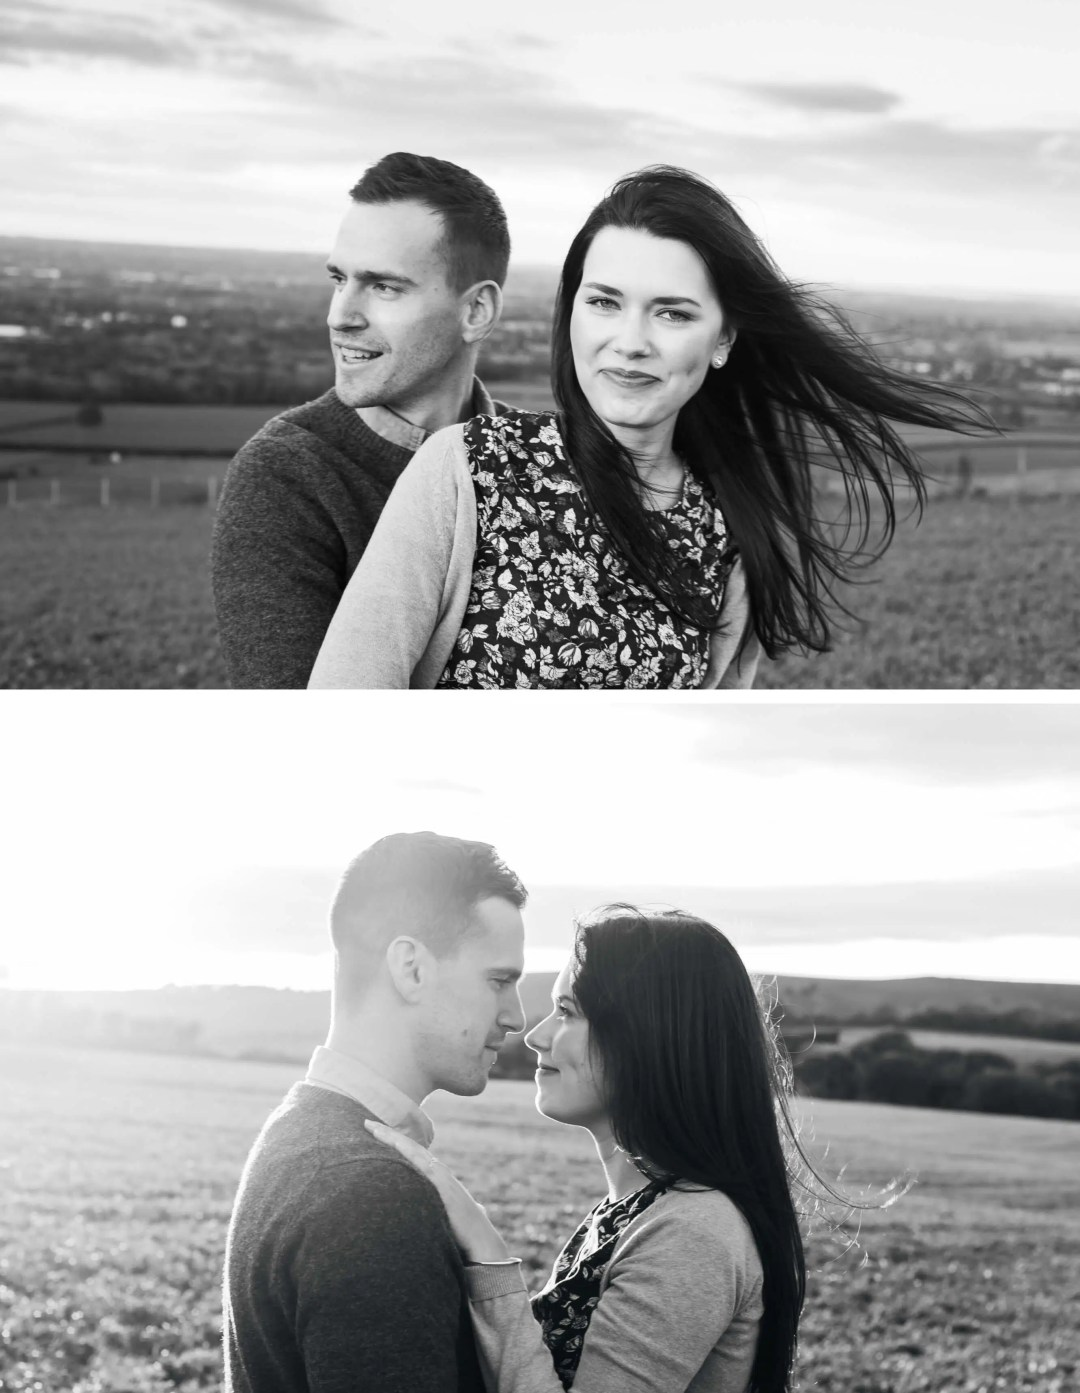 Brighton Engagement Photographer _ West Sussex engagement photoshoot near Hassocks